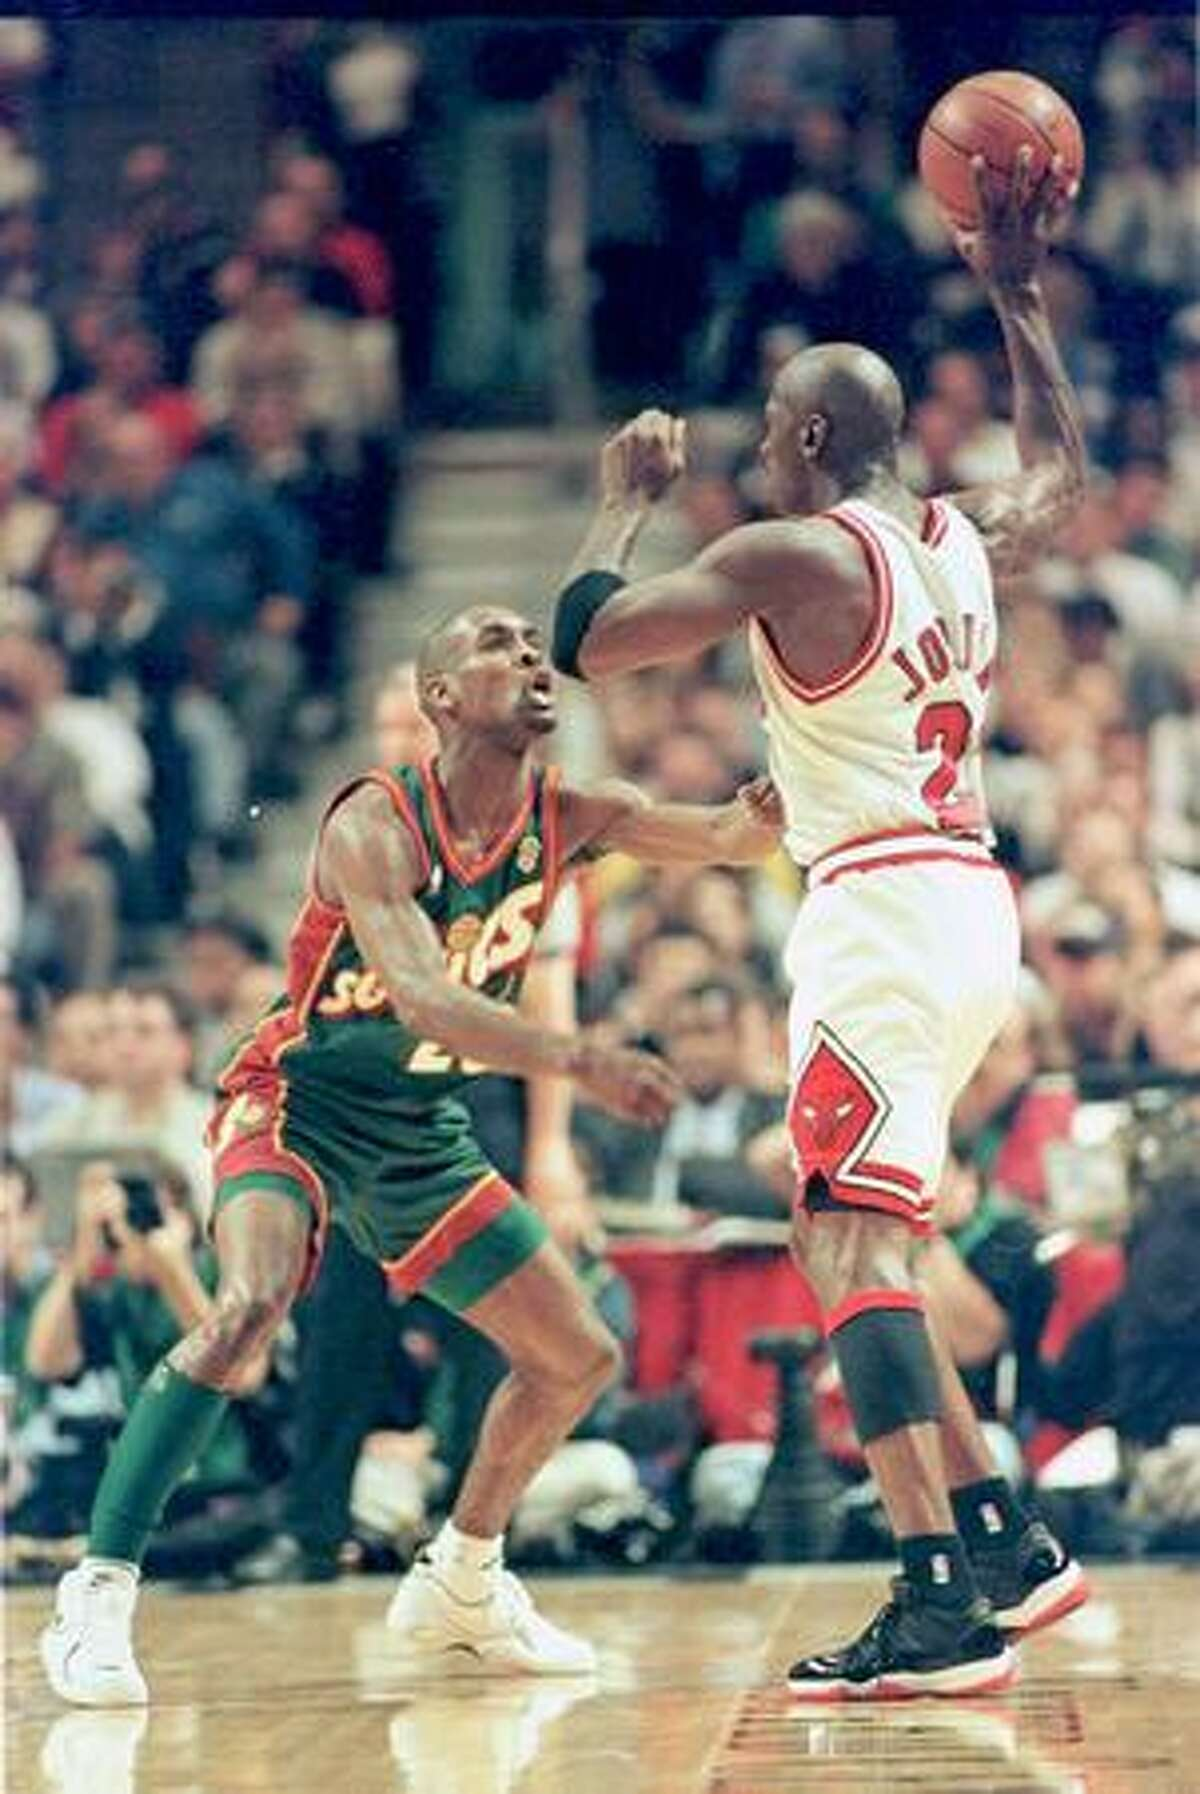 Gary Payton pressures Michael Jordan during Game 1 of the NBA Finals in Chicago, June 5, 1996. (Gilbert W. Arias/seattlepi.com file)